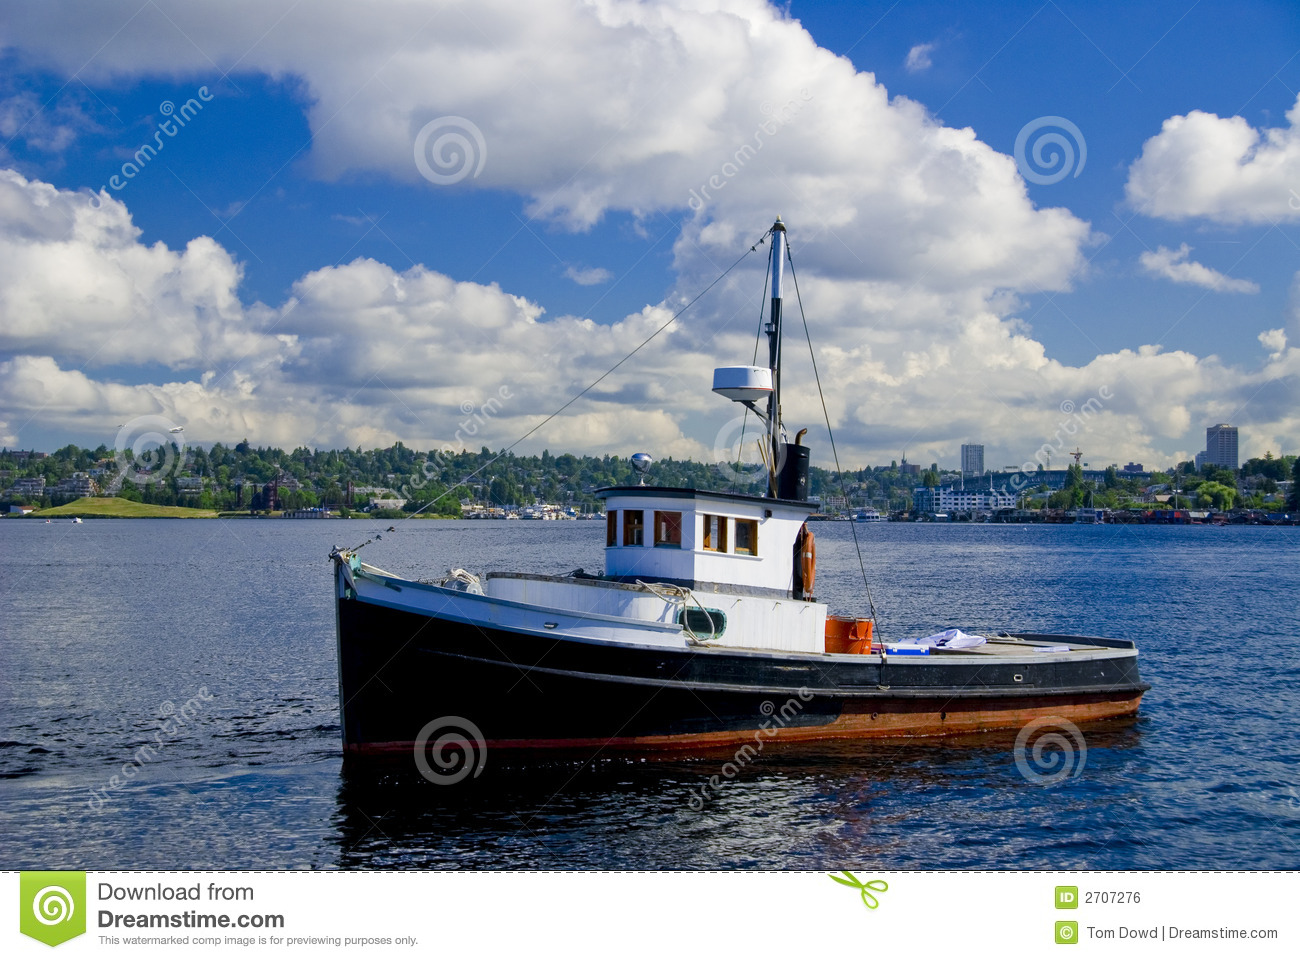 small wooden fishing boat on Lake Union in Seattle, WA.